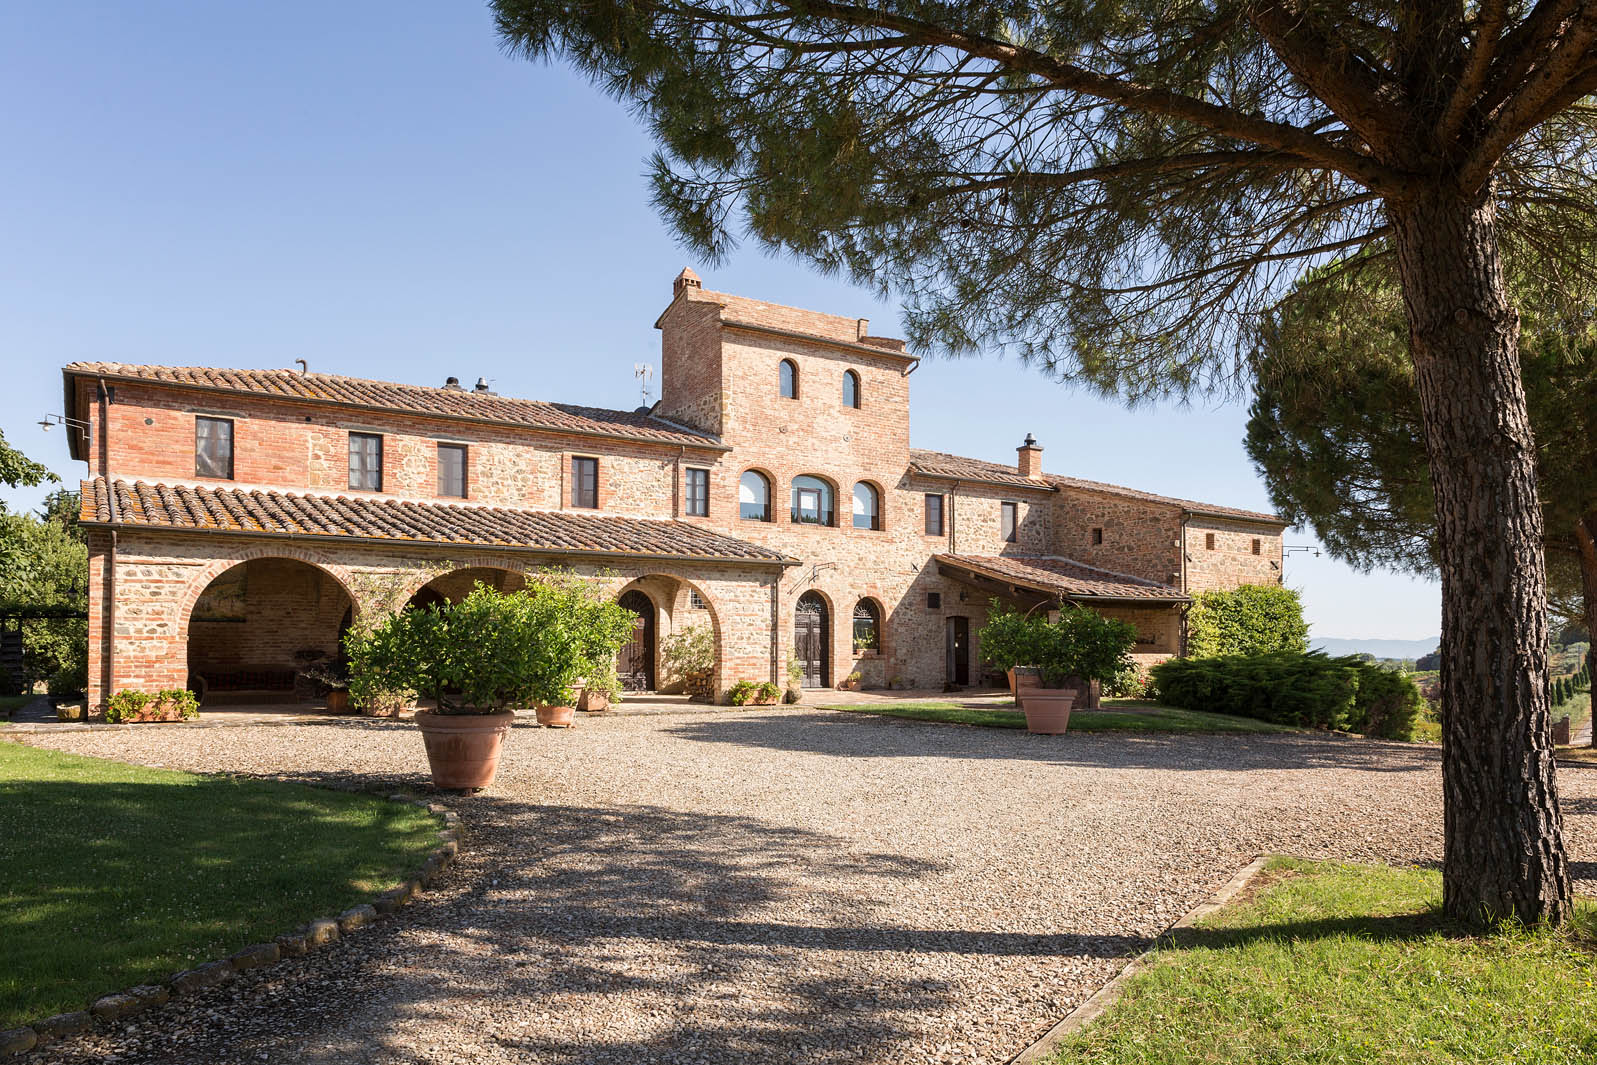 FARMHOUSE/COUNTRY HOUSE IN ITALY FOR SALE - TUSCANY AND UMBRIA